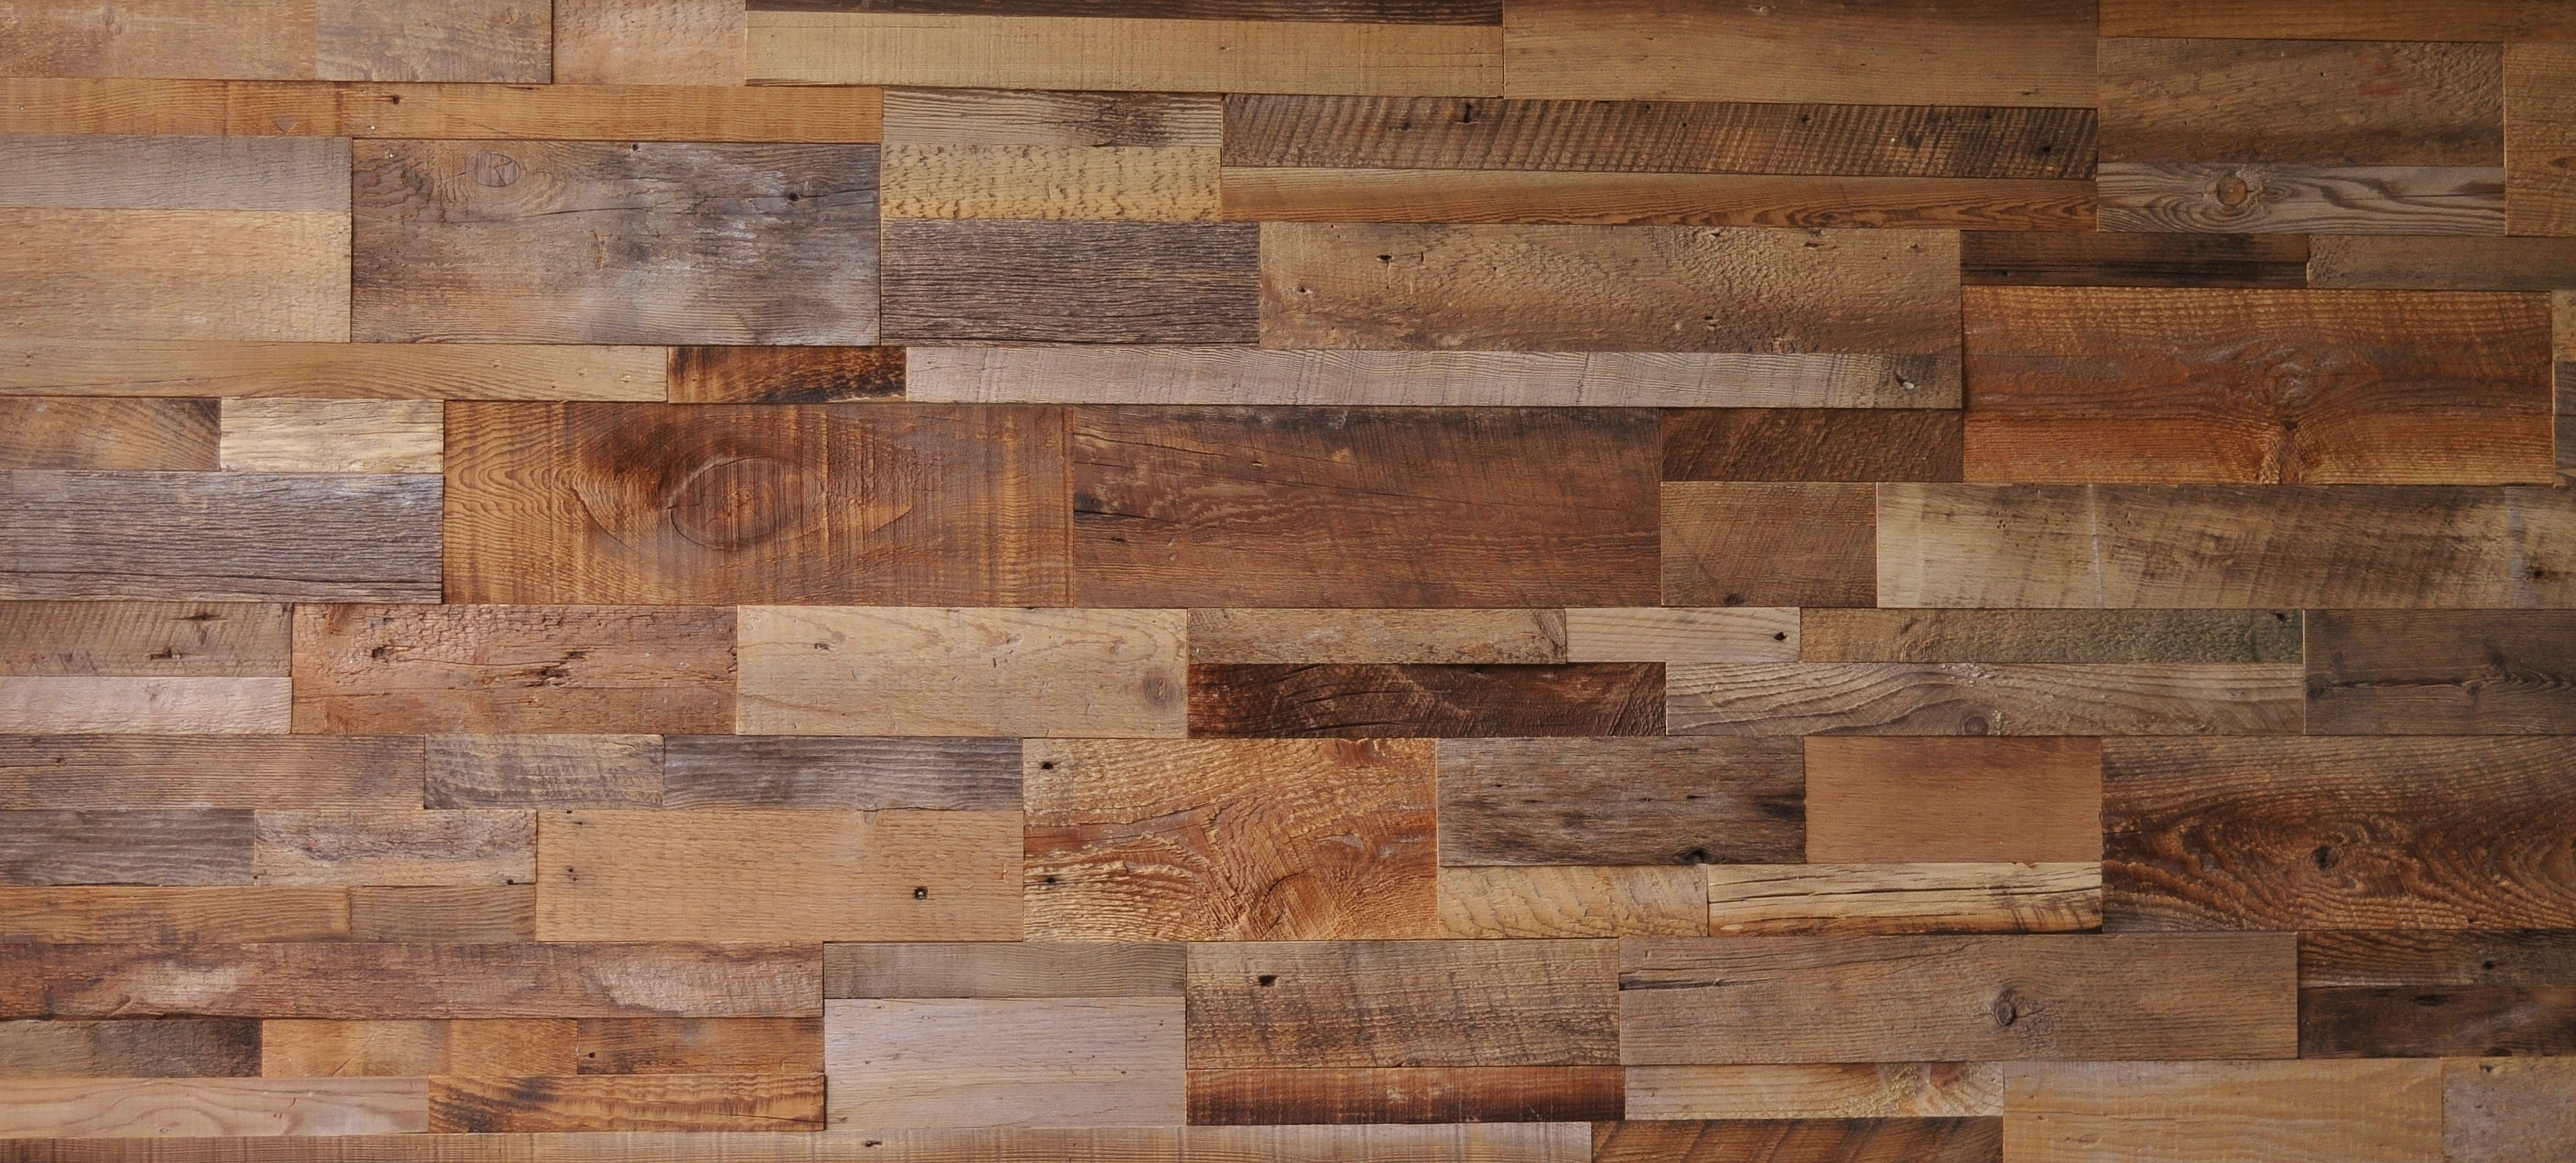 Diy Reclaimed Barn Wood Accent Wall Brown Natural Mixed Width Priced Per Square Foot